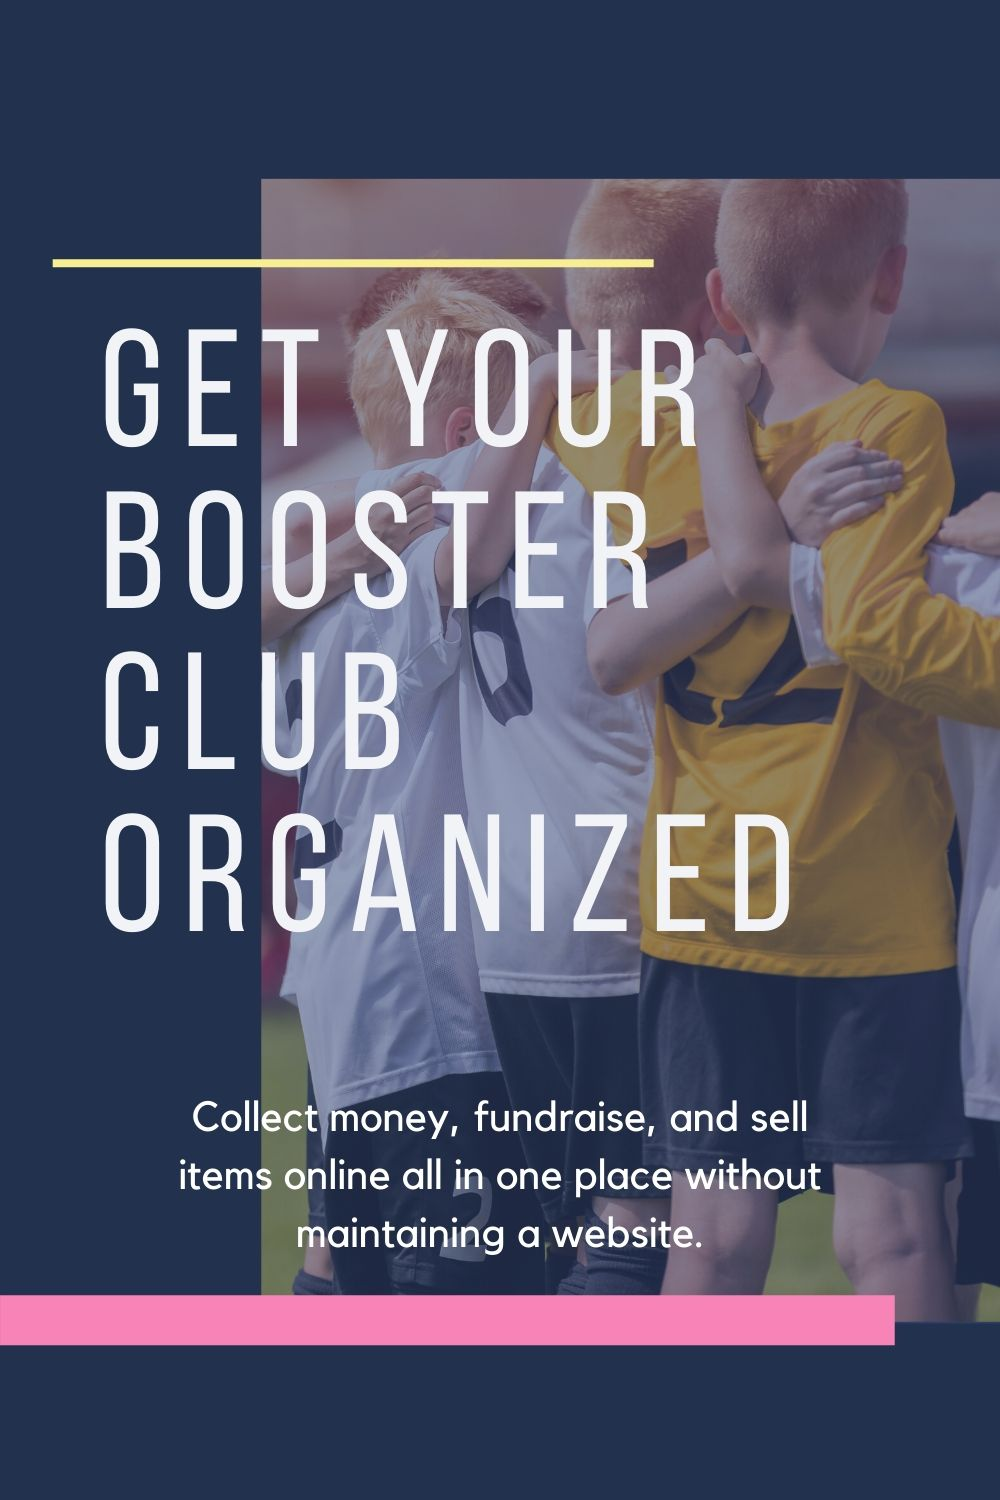 get your booster club organized